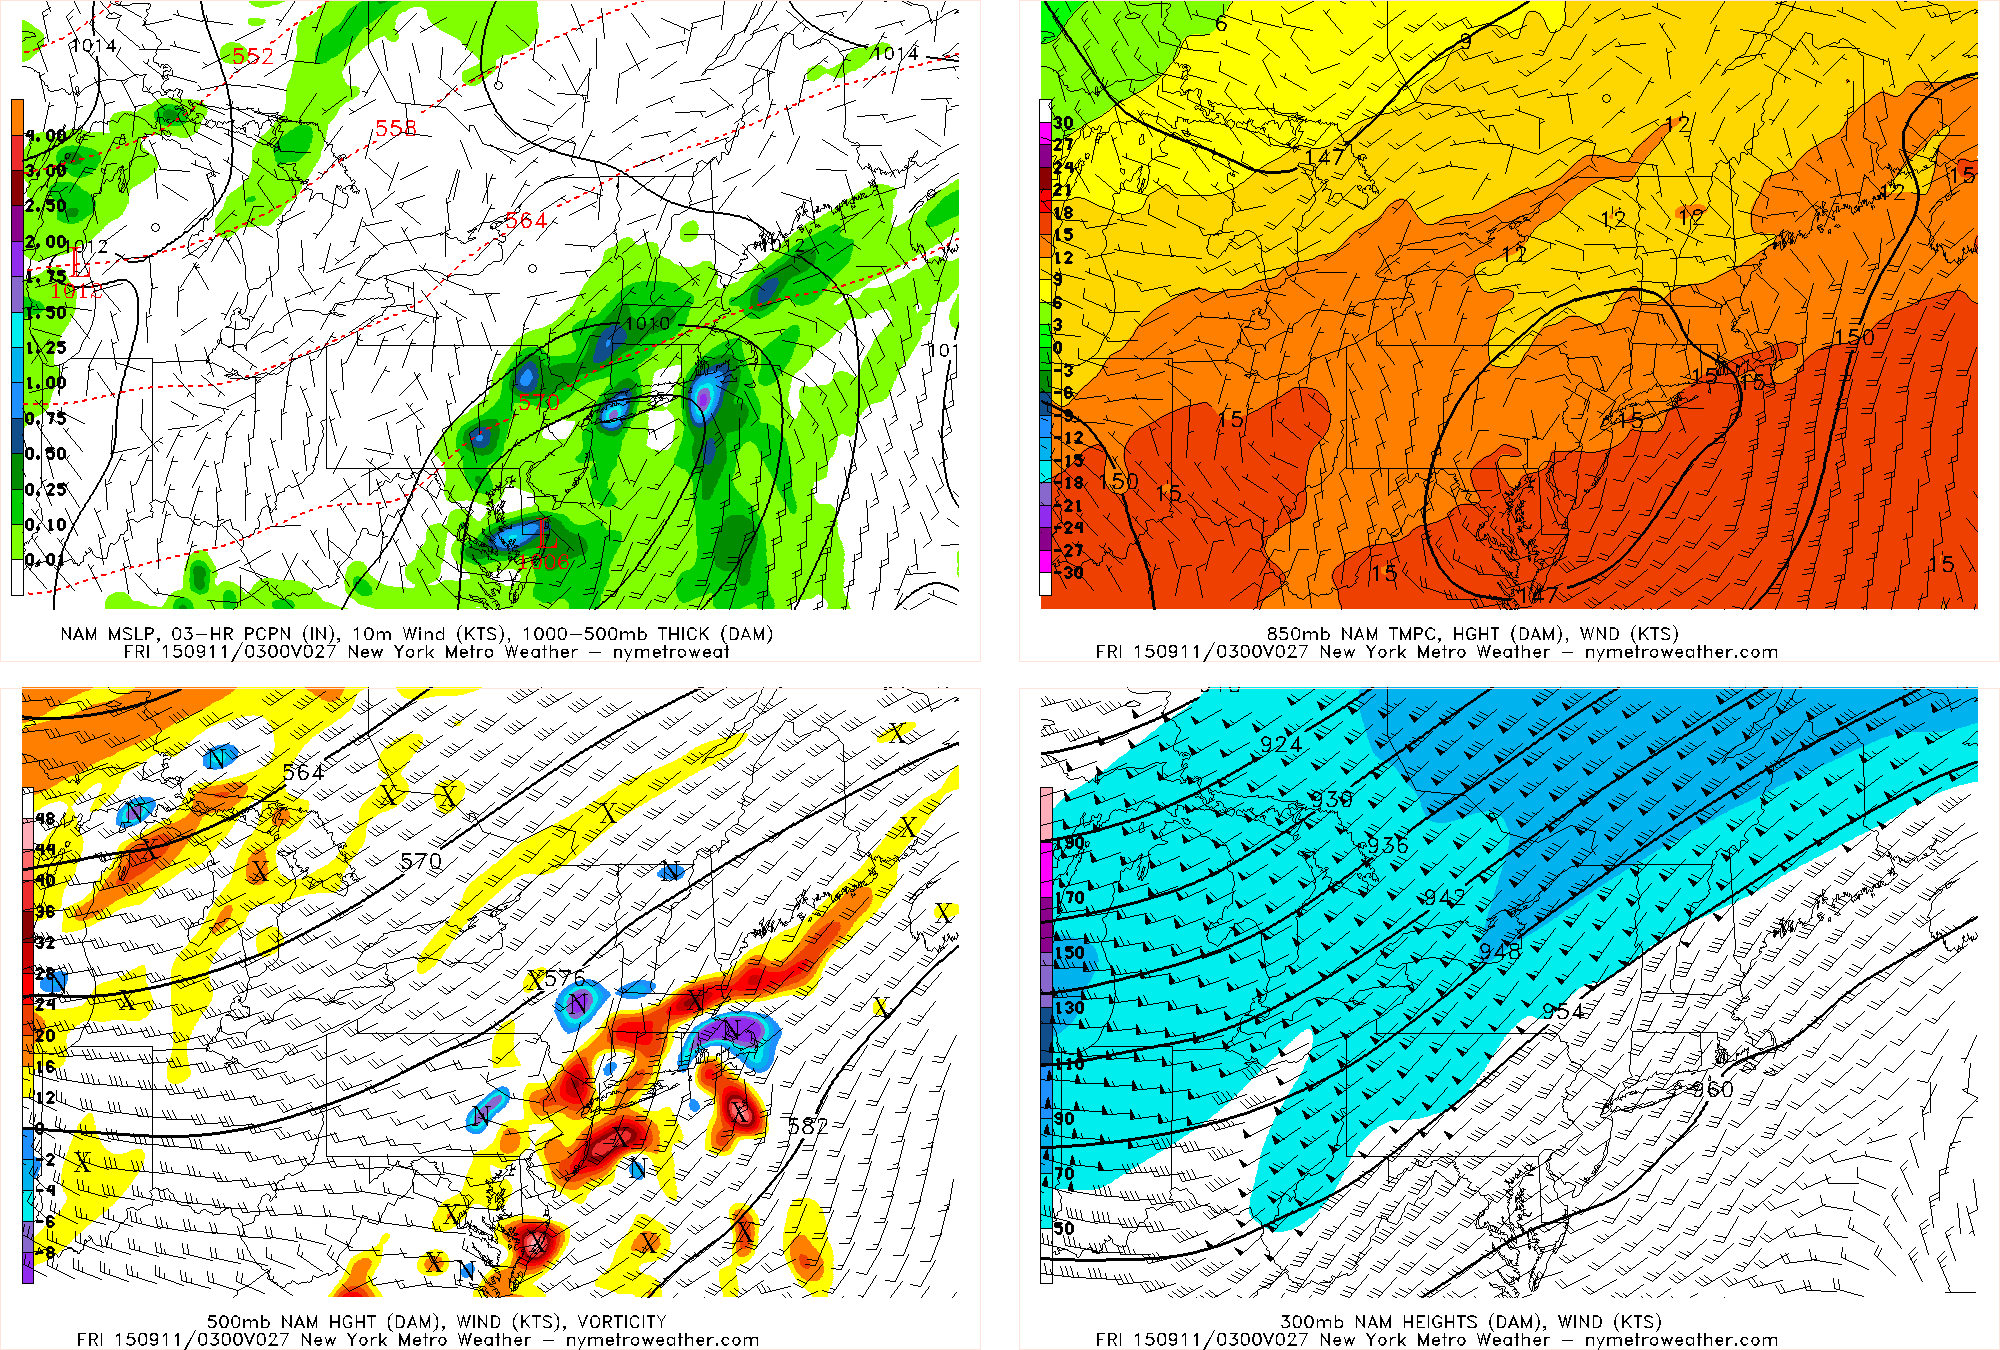 Last night's NAM model valid for this afternoon shows a well-defined low pressure system producing very heavy rain in some locations, but much lighter rain in locations near-by. This complicates the forecast.